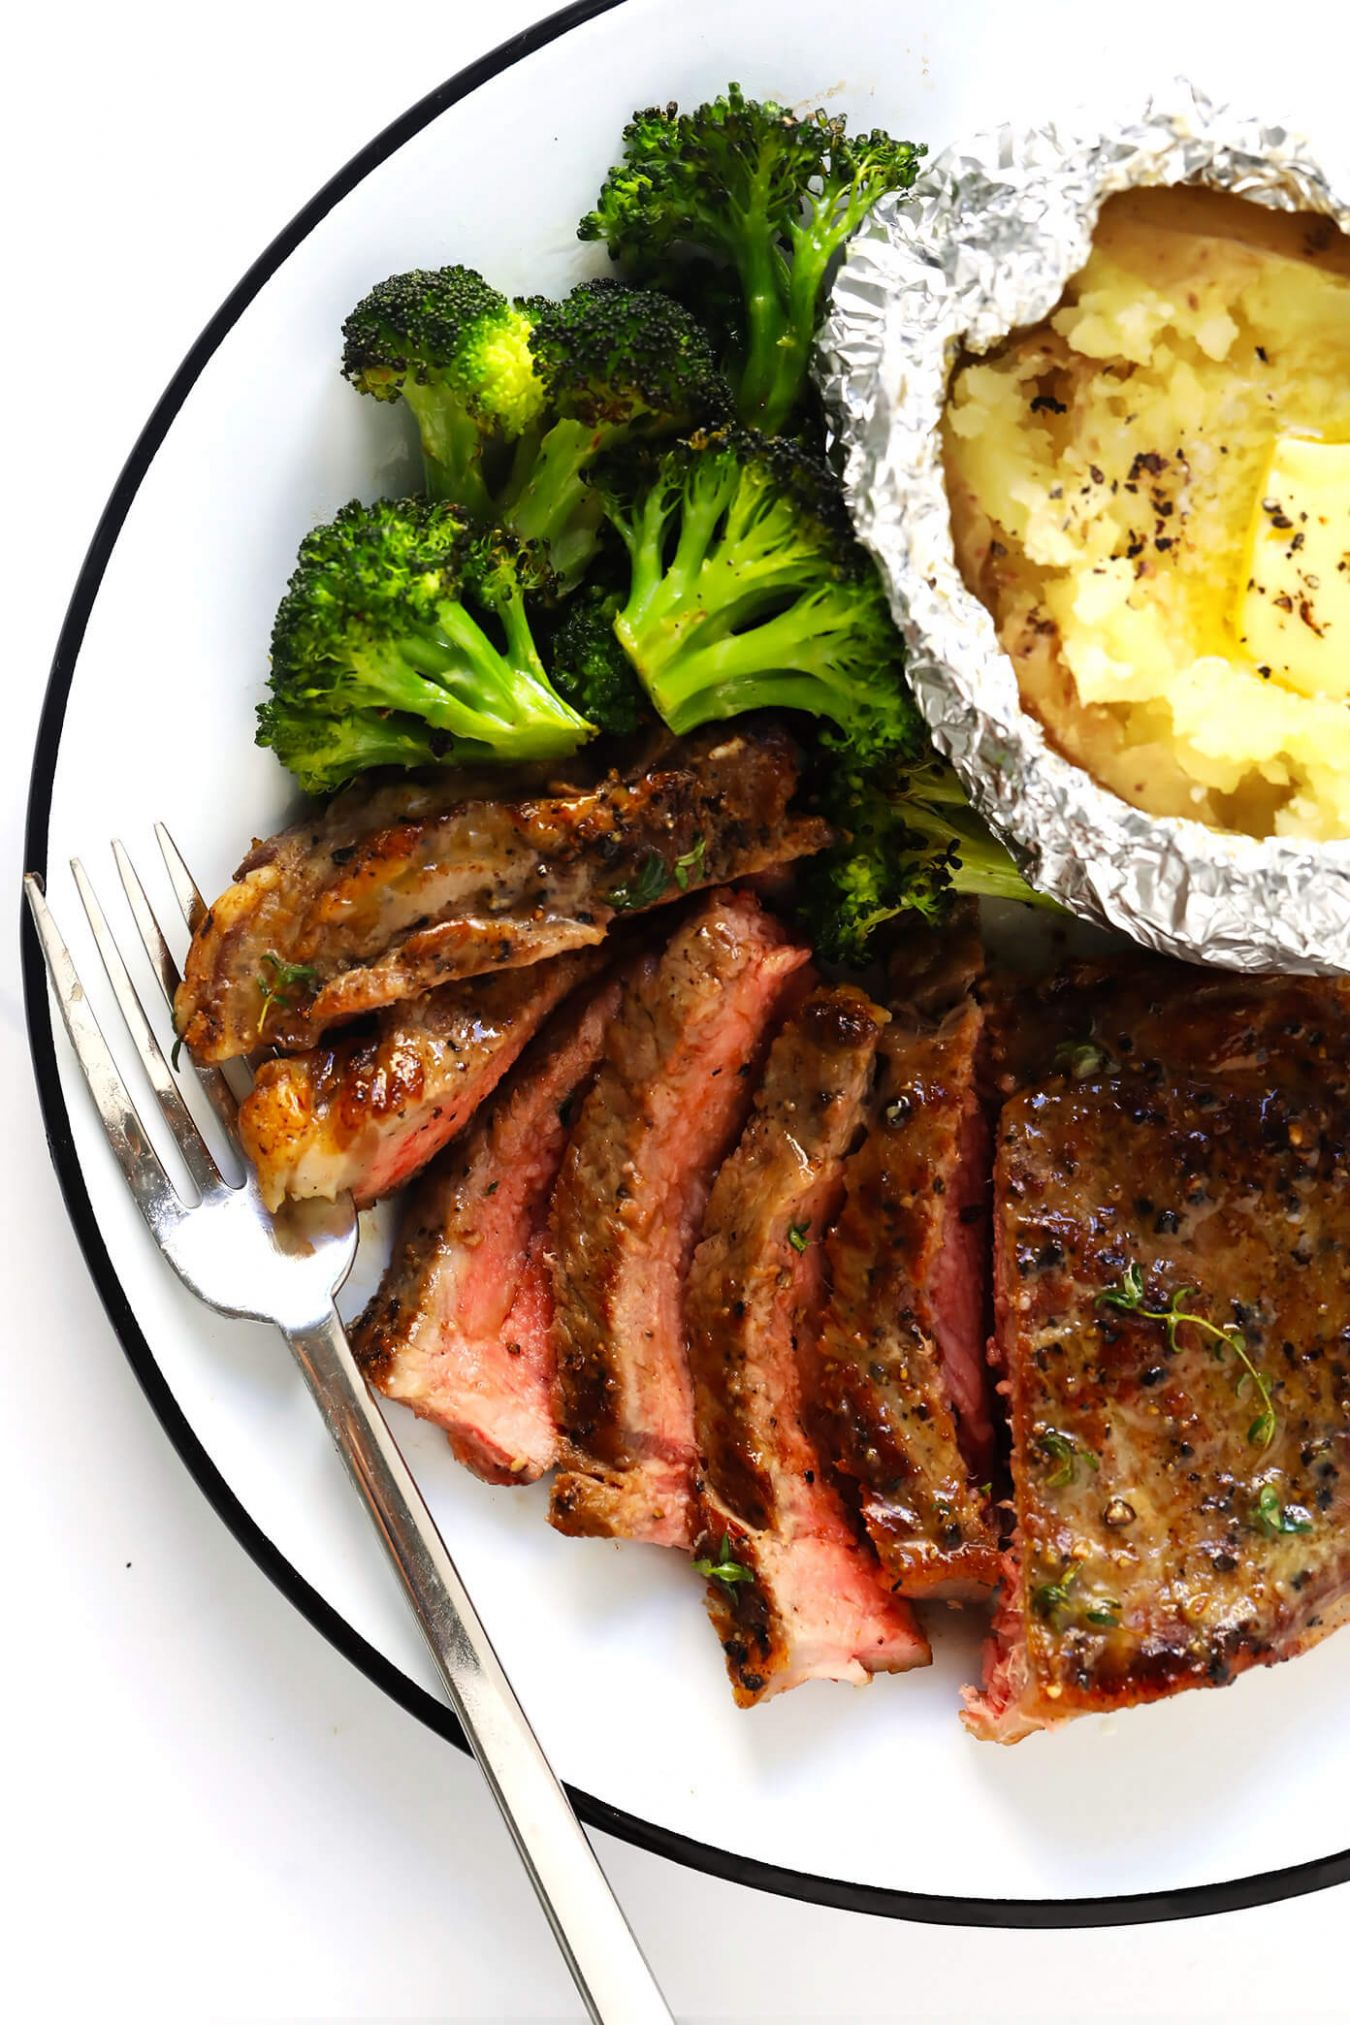 How To Cook Steak In The Oven - Easy Recipes Meat